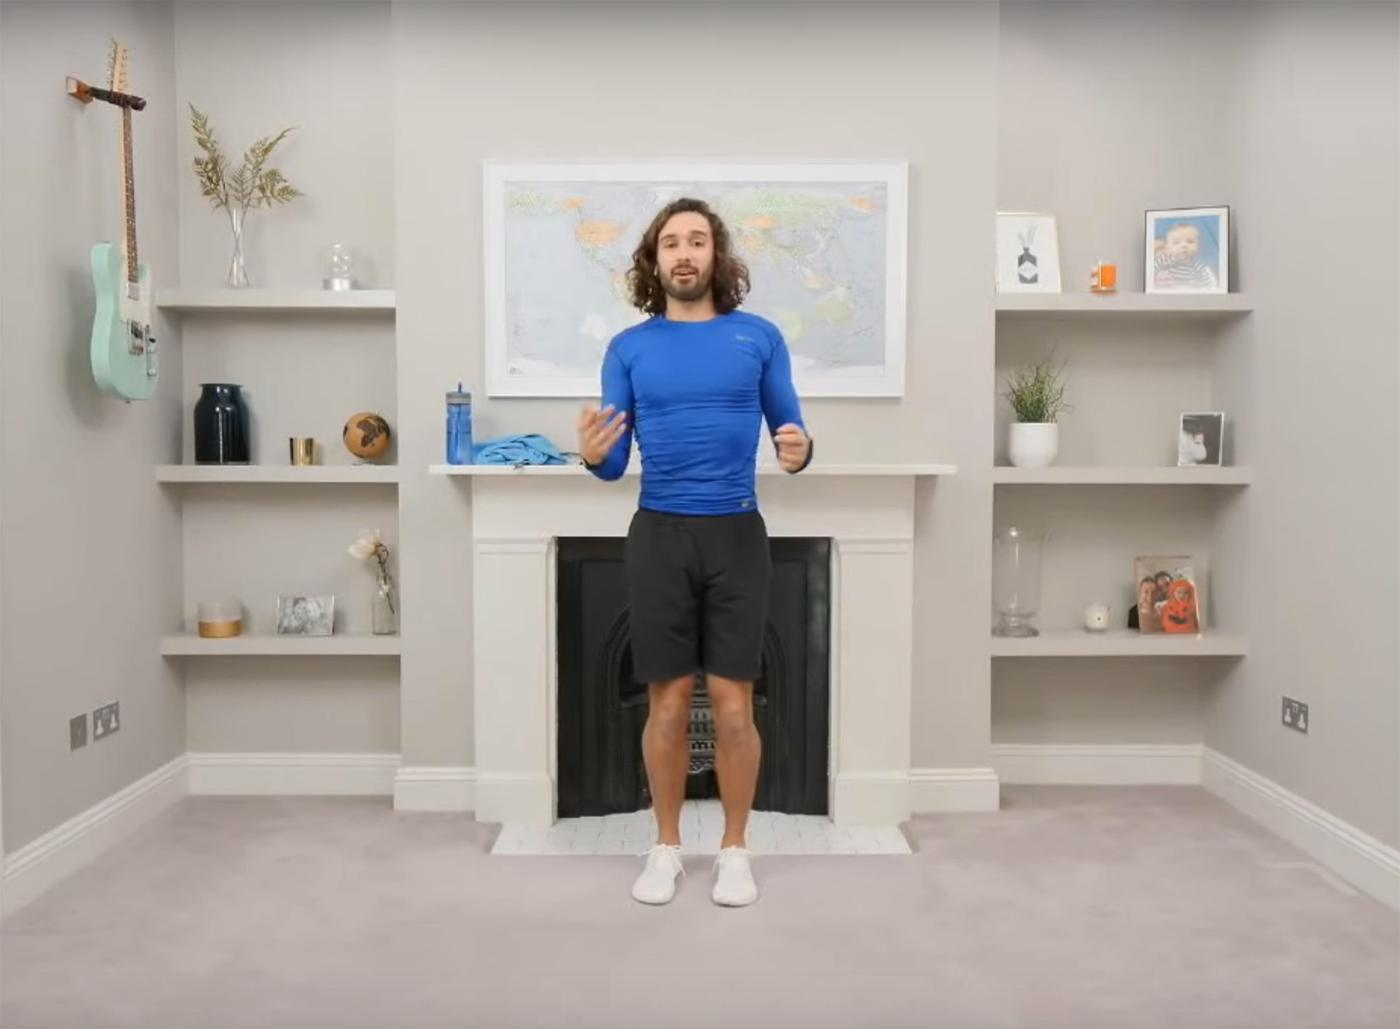 Personal trainer Joe Wicks has pledged to stream a live exercise session every weekday until schools are reopened / Youtube / The Body Coach